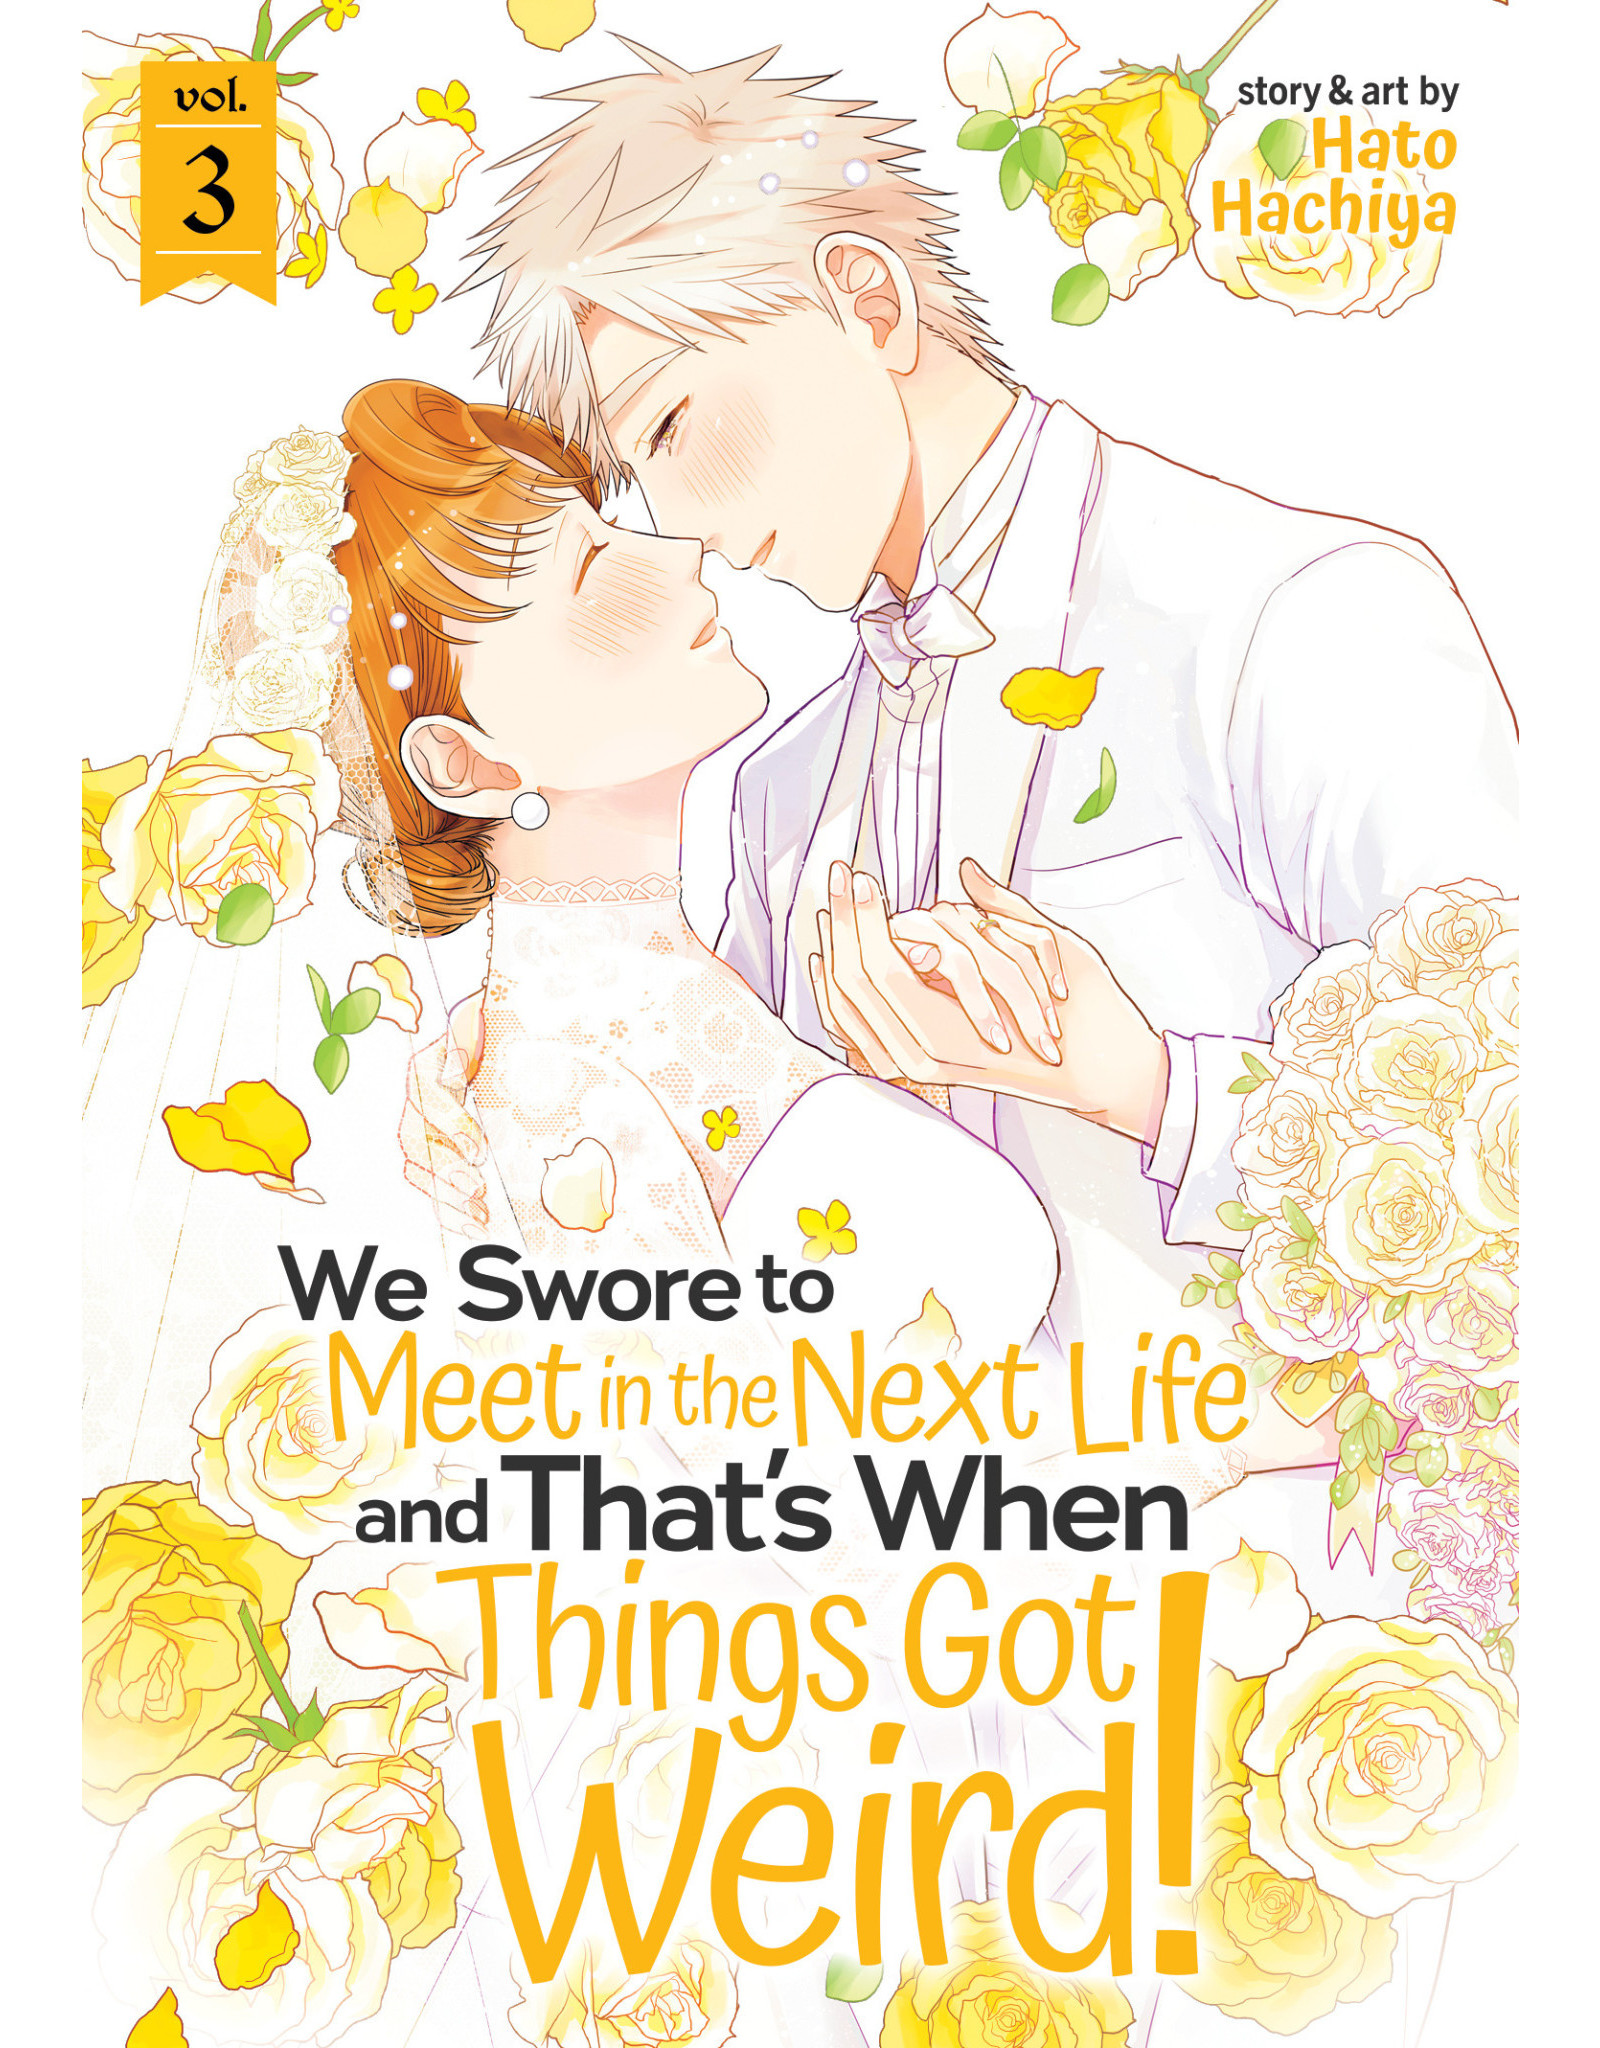 We Swore to Meet in the Next Life and That's When Things Got Weird! 3 (Engels) - Manga